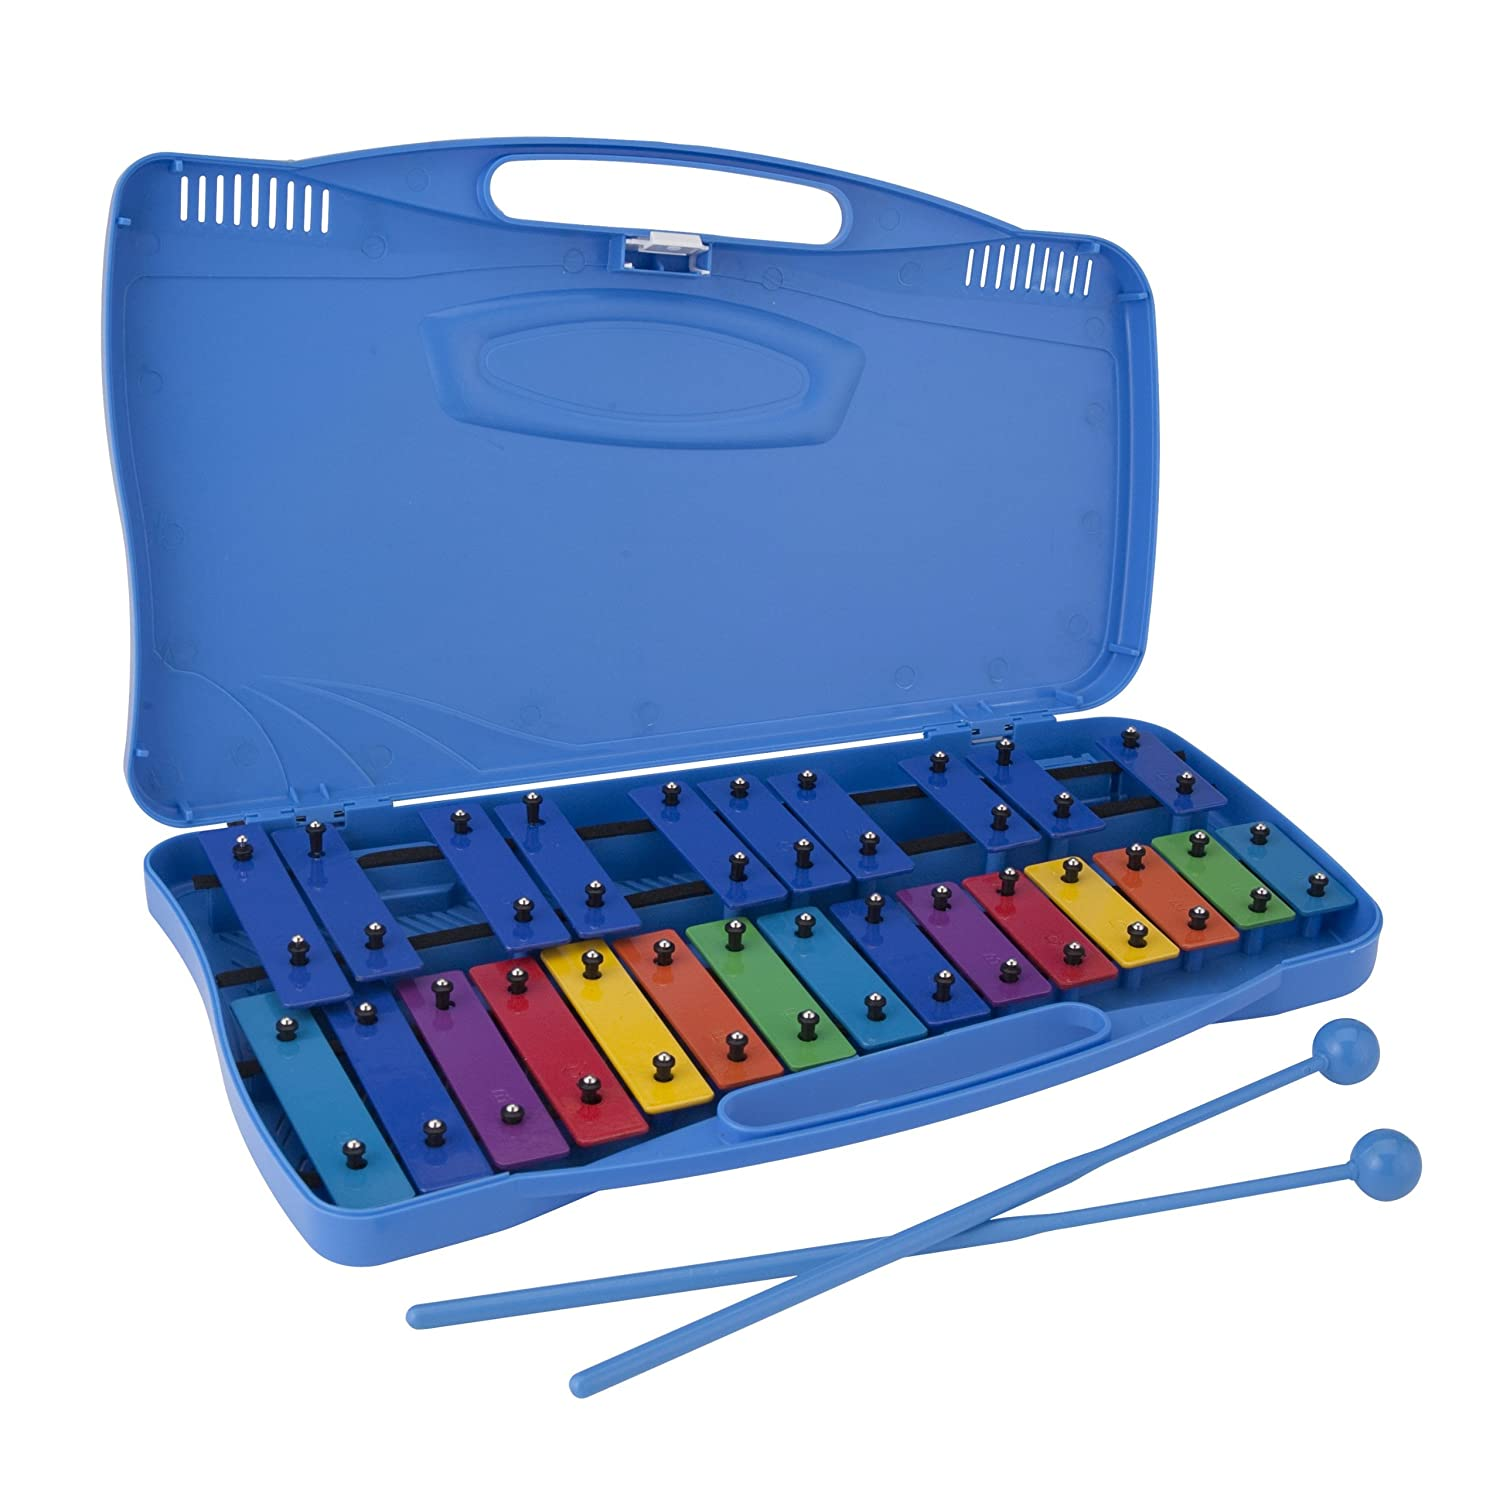 Top 7 Best Babies Xylophone Reviews in 2019 6